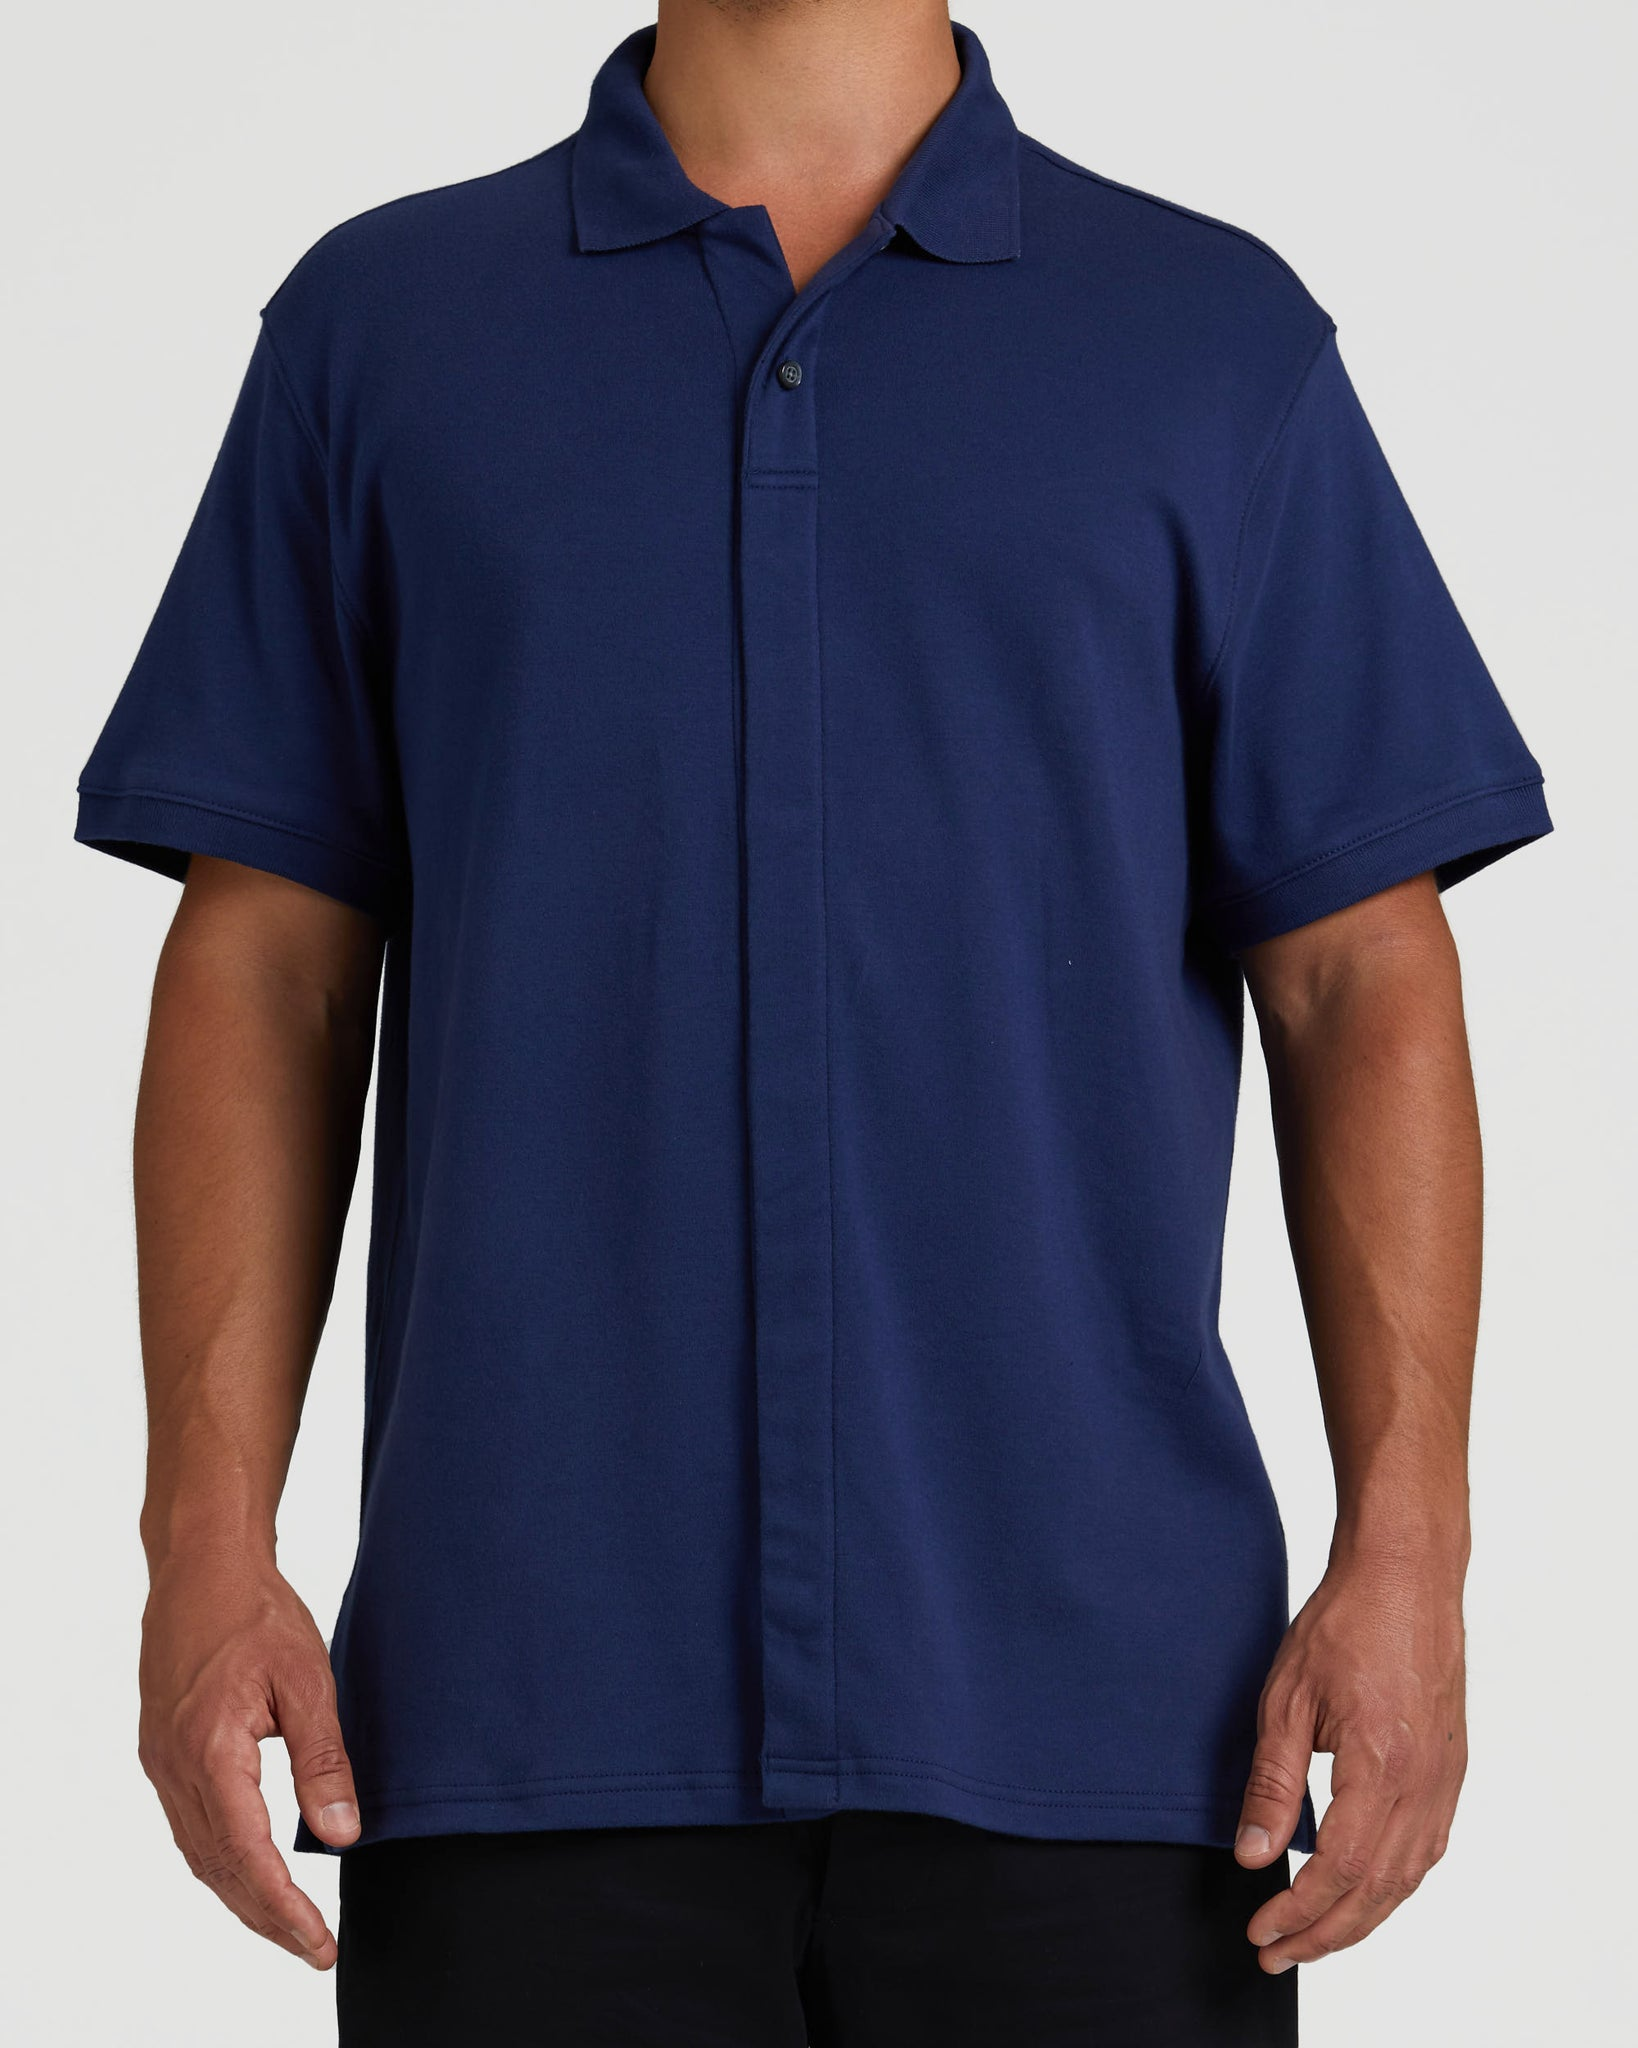 MagnaClick Cotton Polo